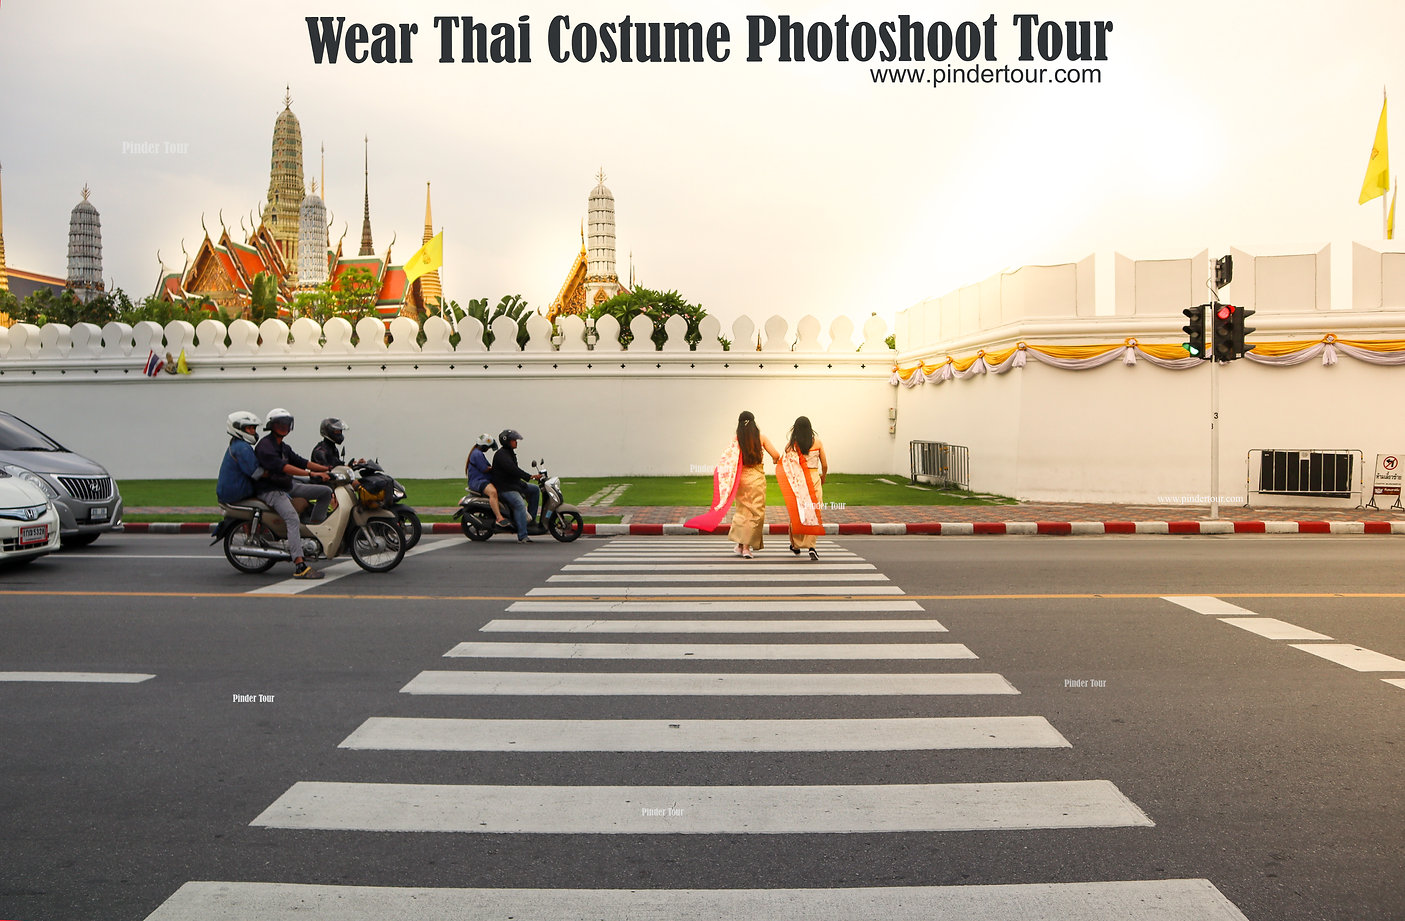 Wear Thai Costume Photo Shoot Tour 1.jpg